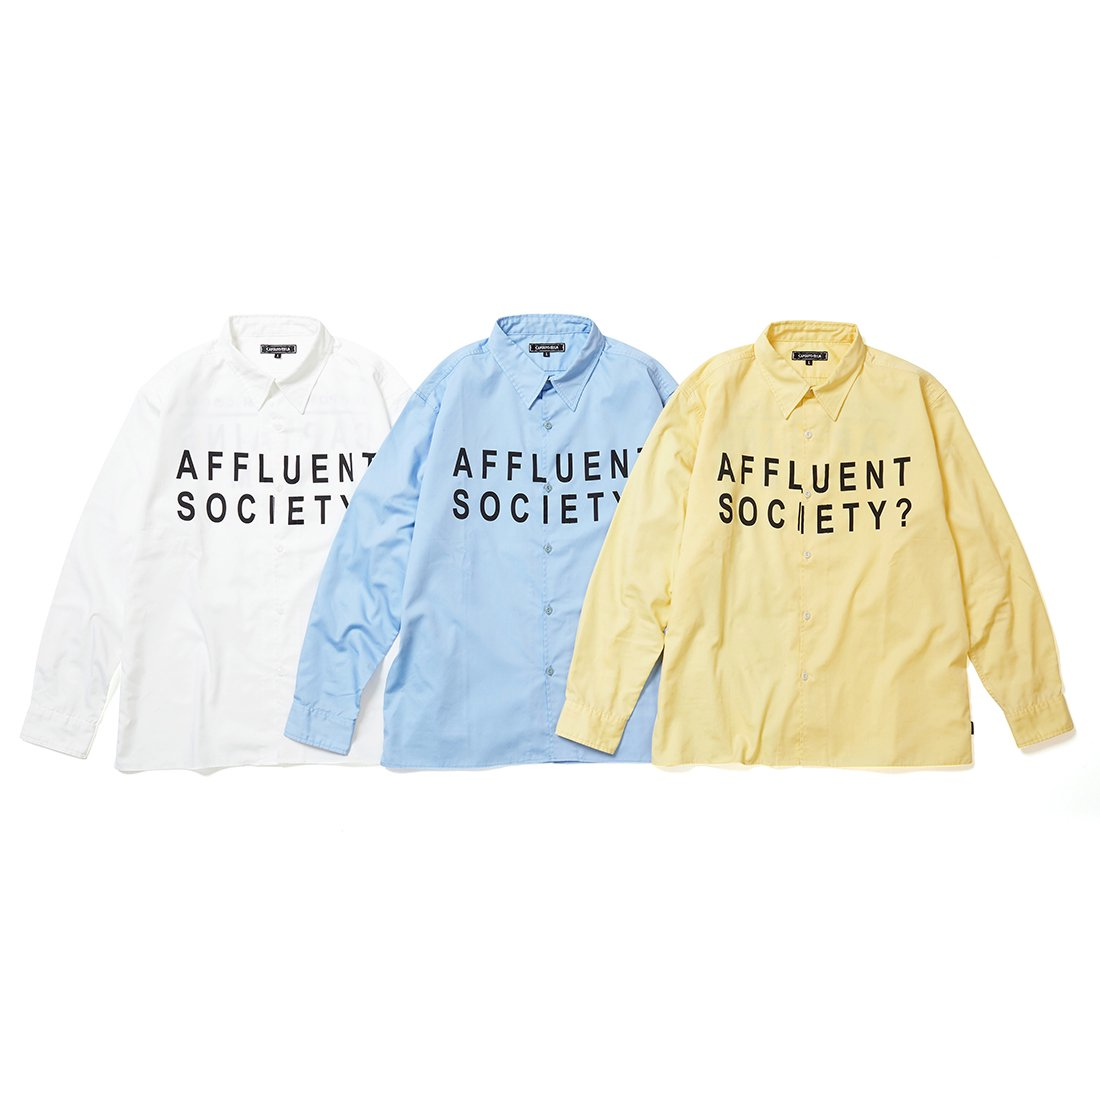 CAPTAINS HELM #AFFLUENT SOCIETY WORK SHIRTS